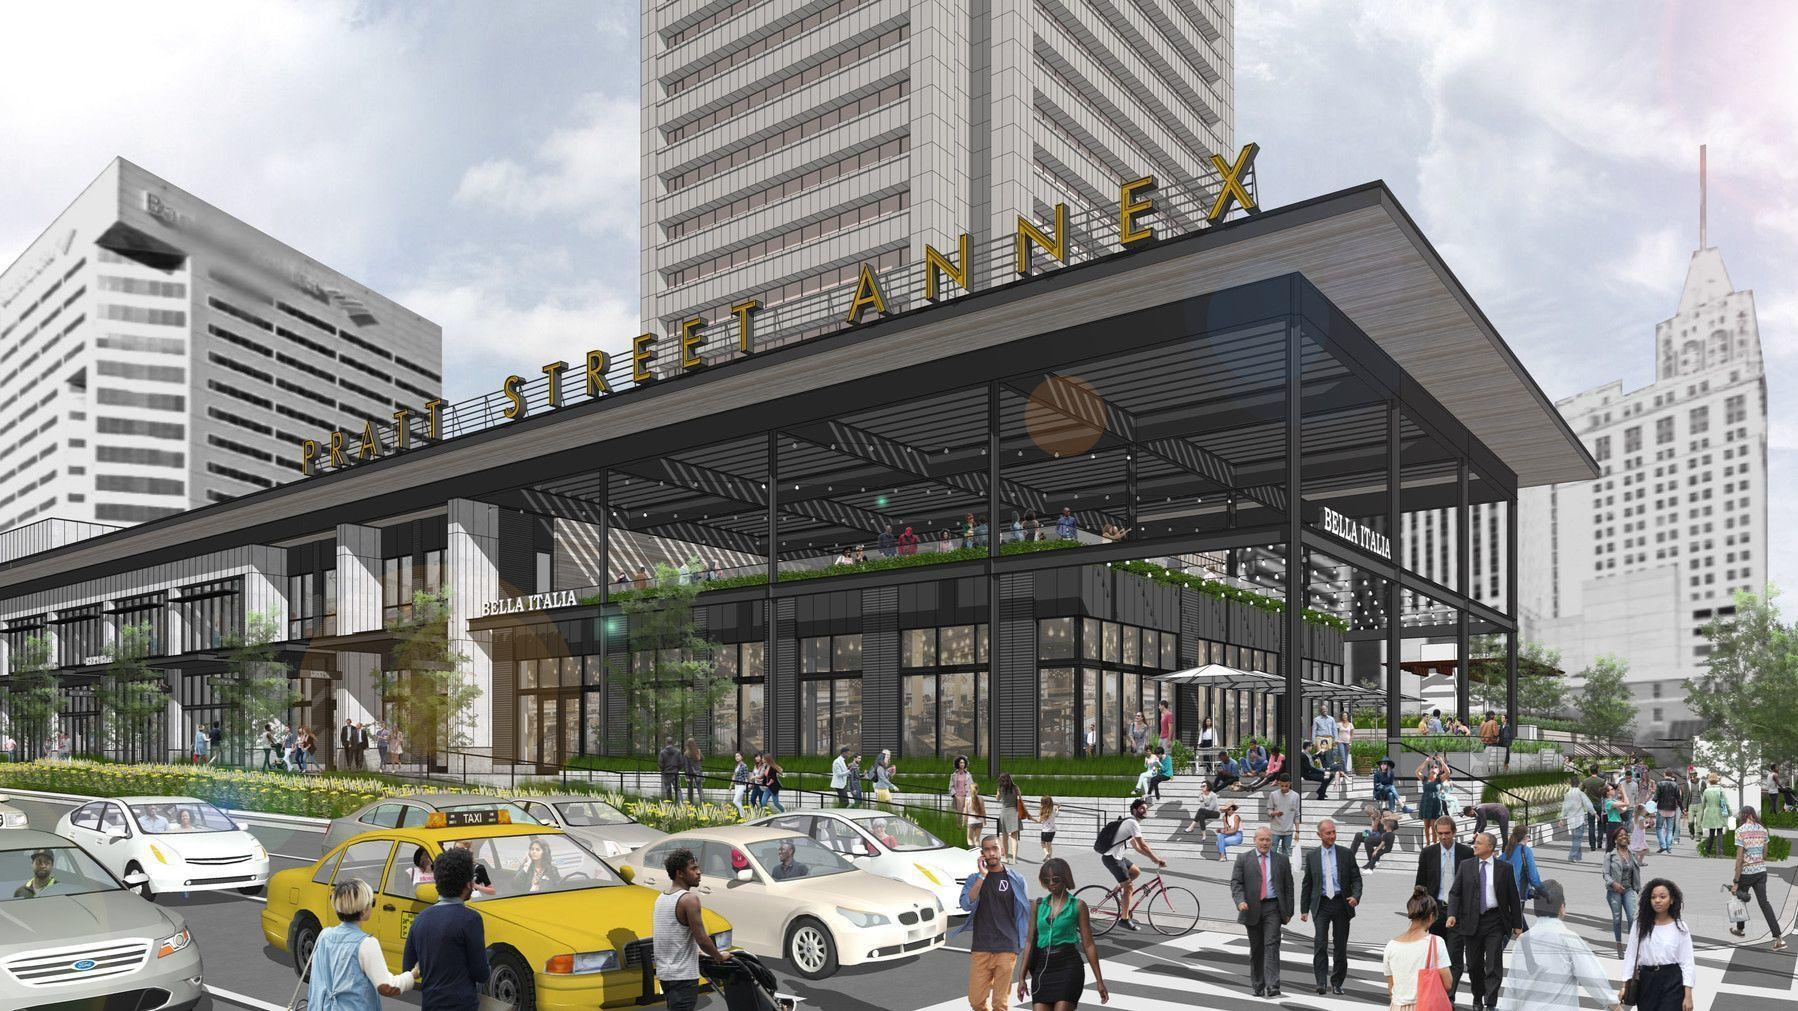 new retail planned in heart of downtown baltimore at pratt and light